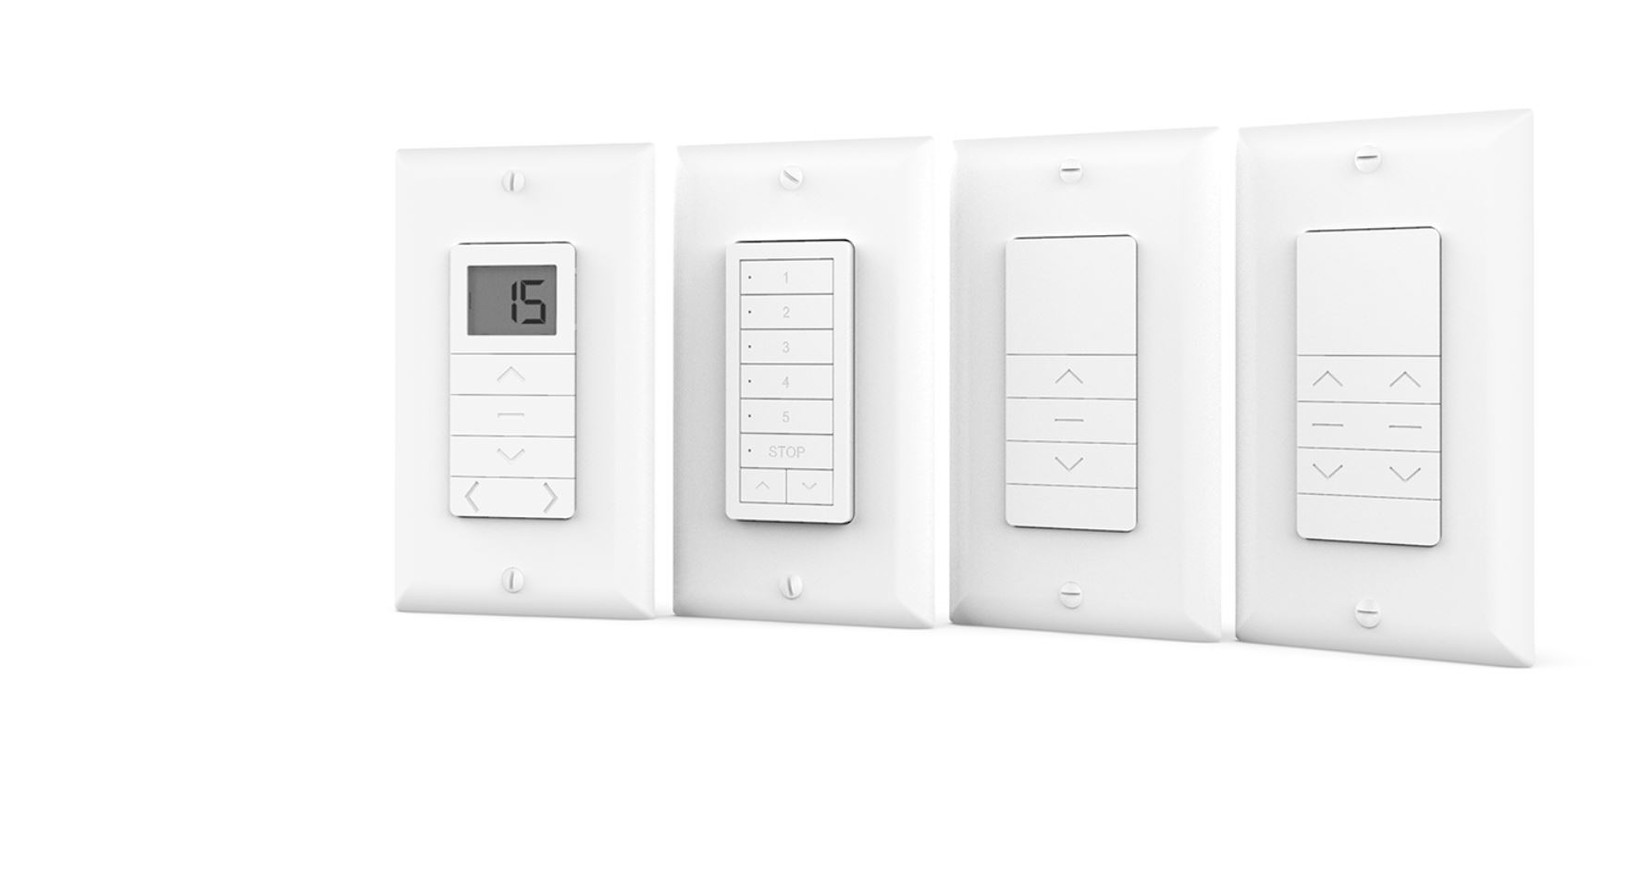 Paradigm Wall Switch